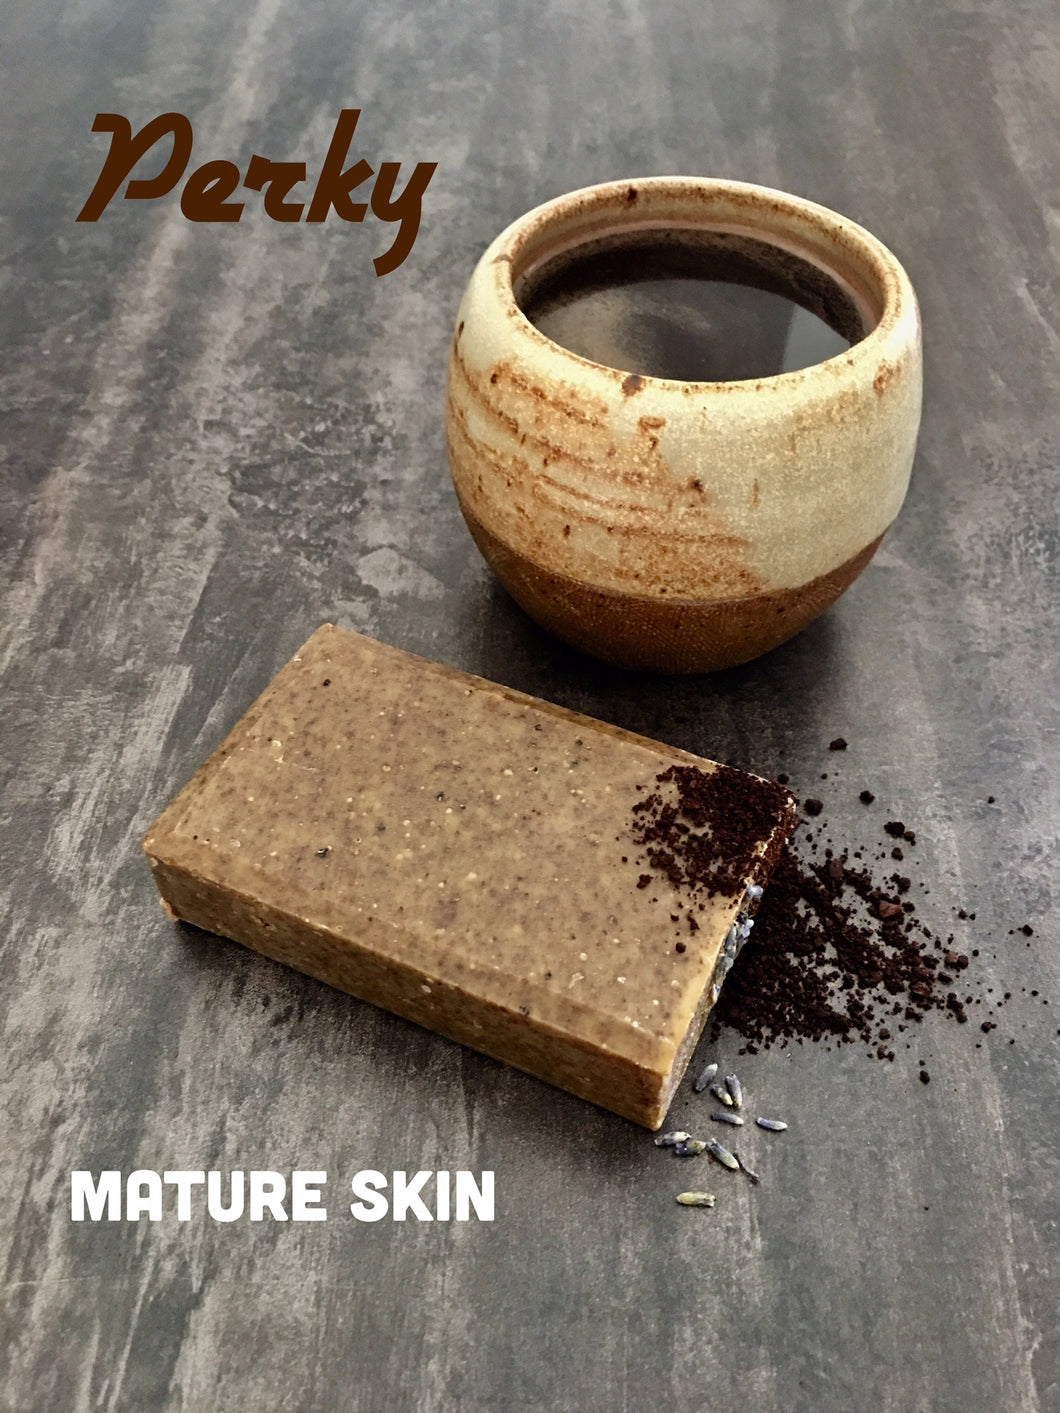 Perky Mature Skin Soap Bar - Little Tree Hugger Soap